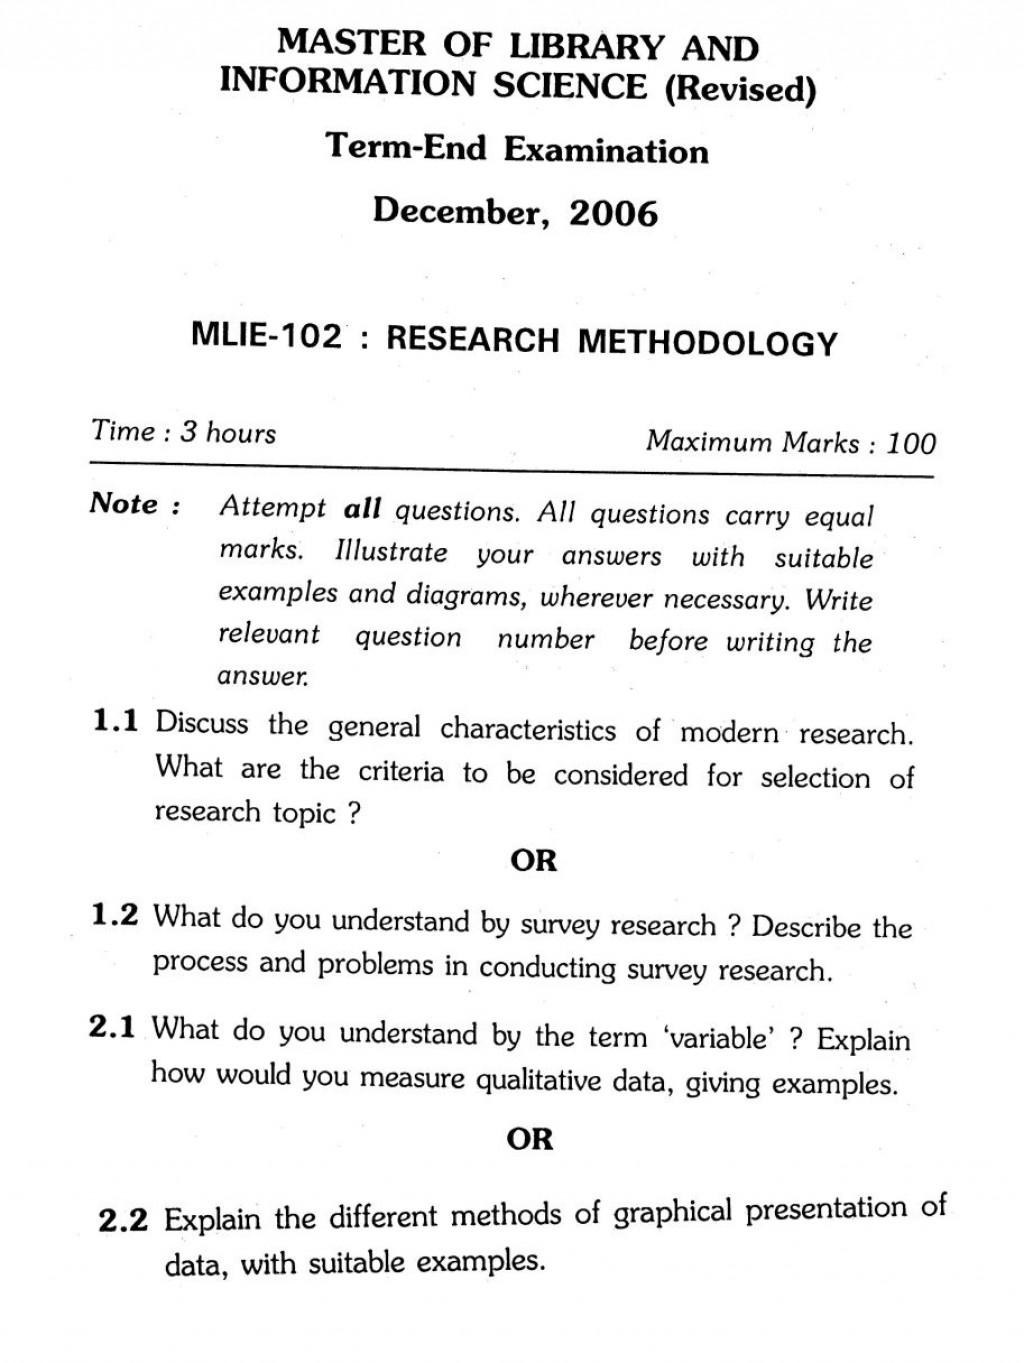 008 Ignou Master Of Library And Information Science Research Methodology Previous Years Questions Example For Unusual Paper In Quantitative Procedure Section A Large